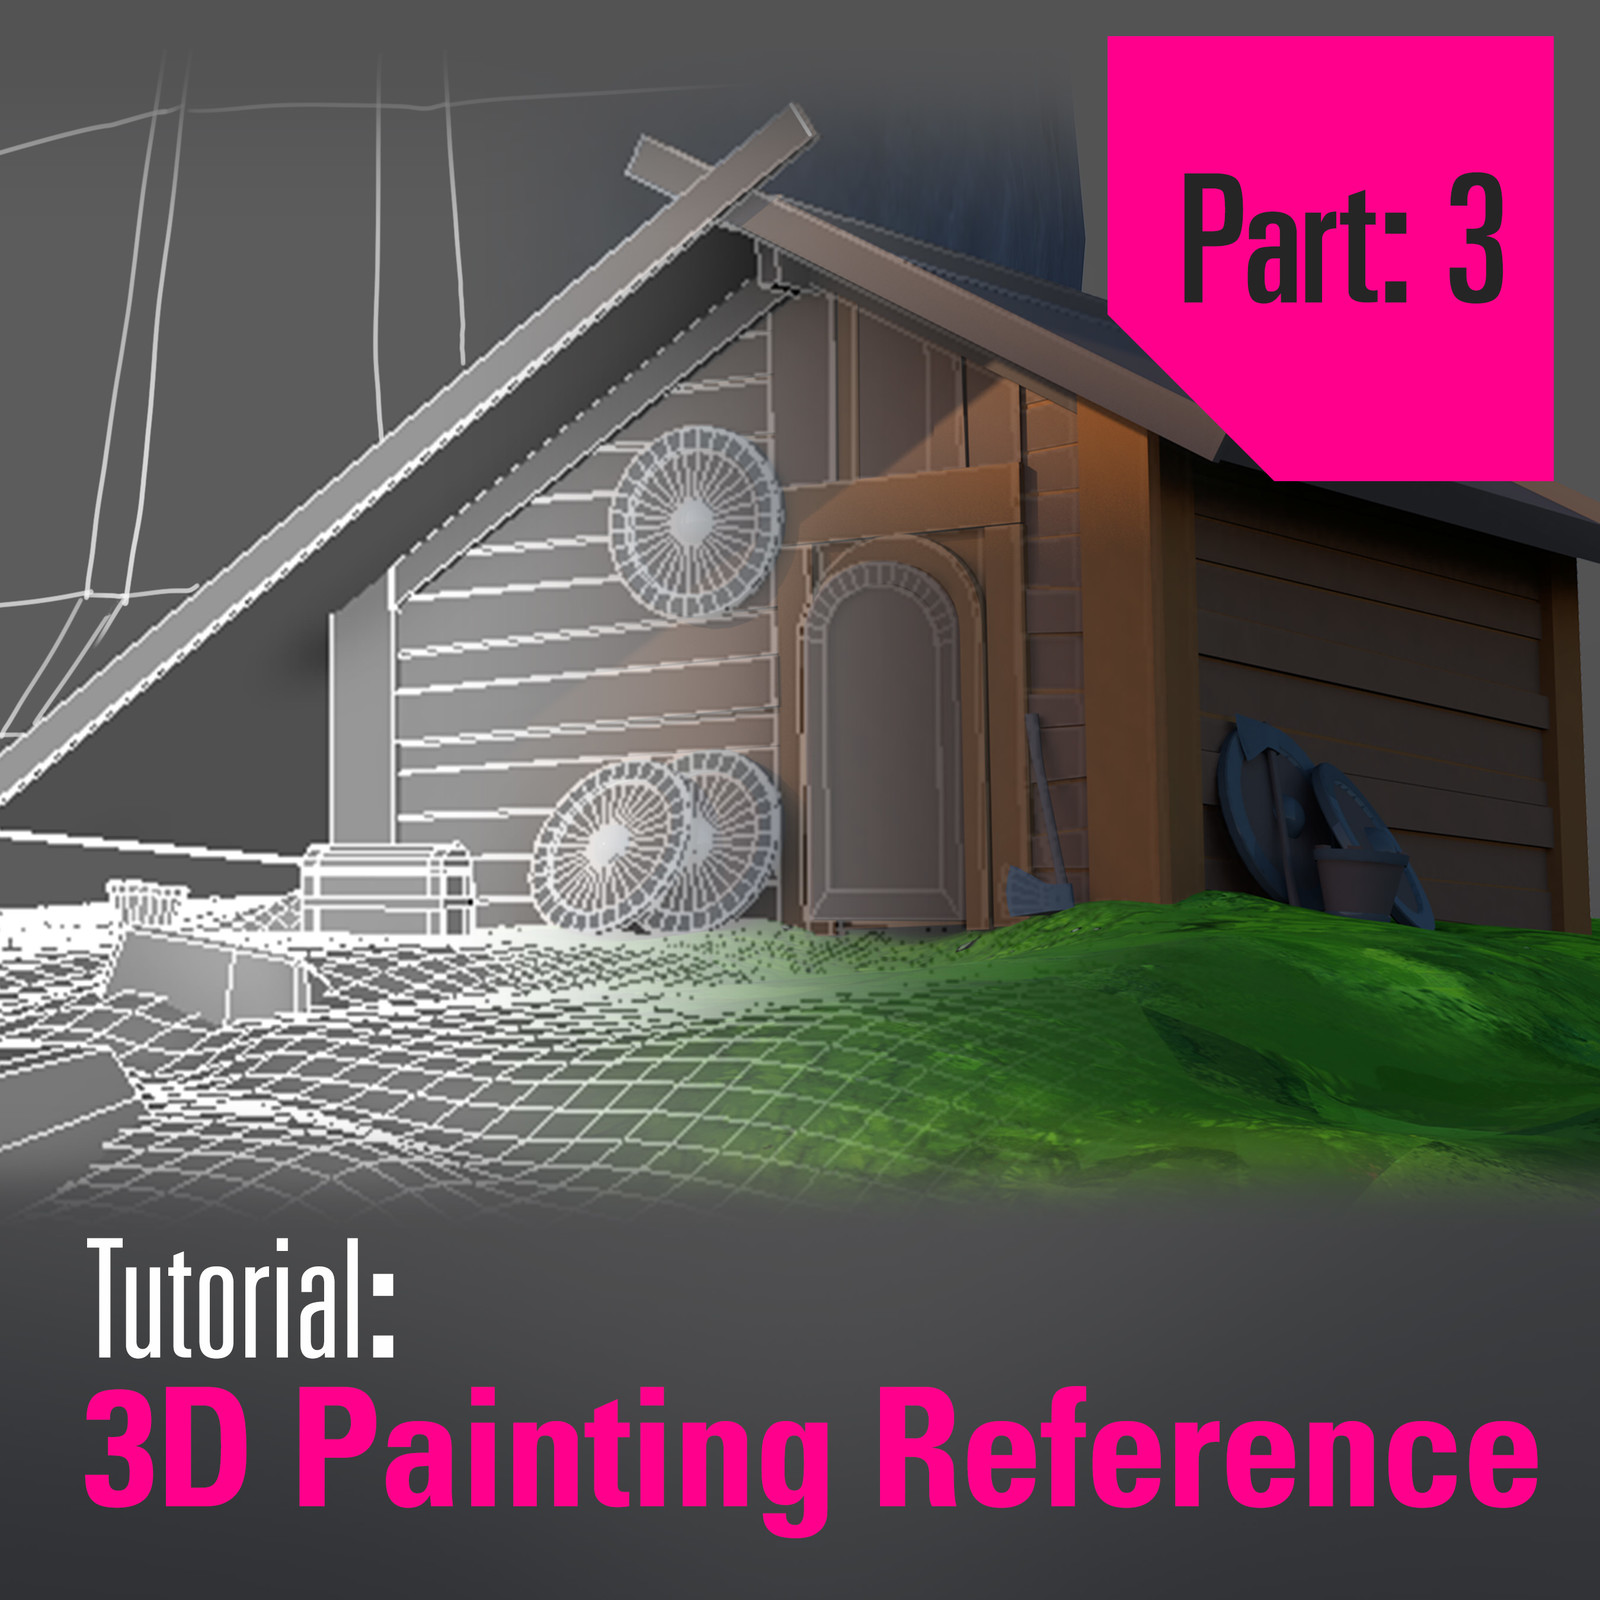 Tutorial: 3D Painting Reference Creation - Part 3